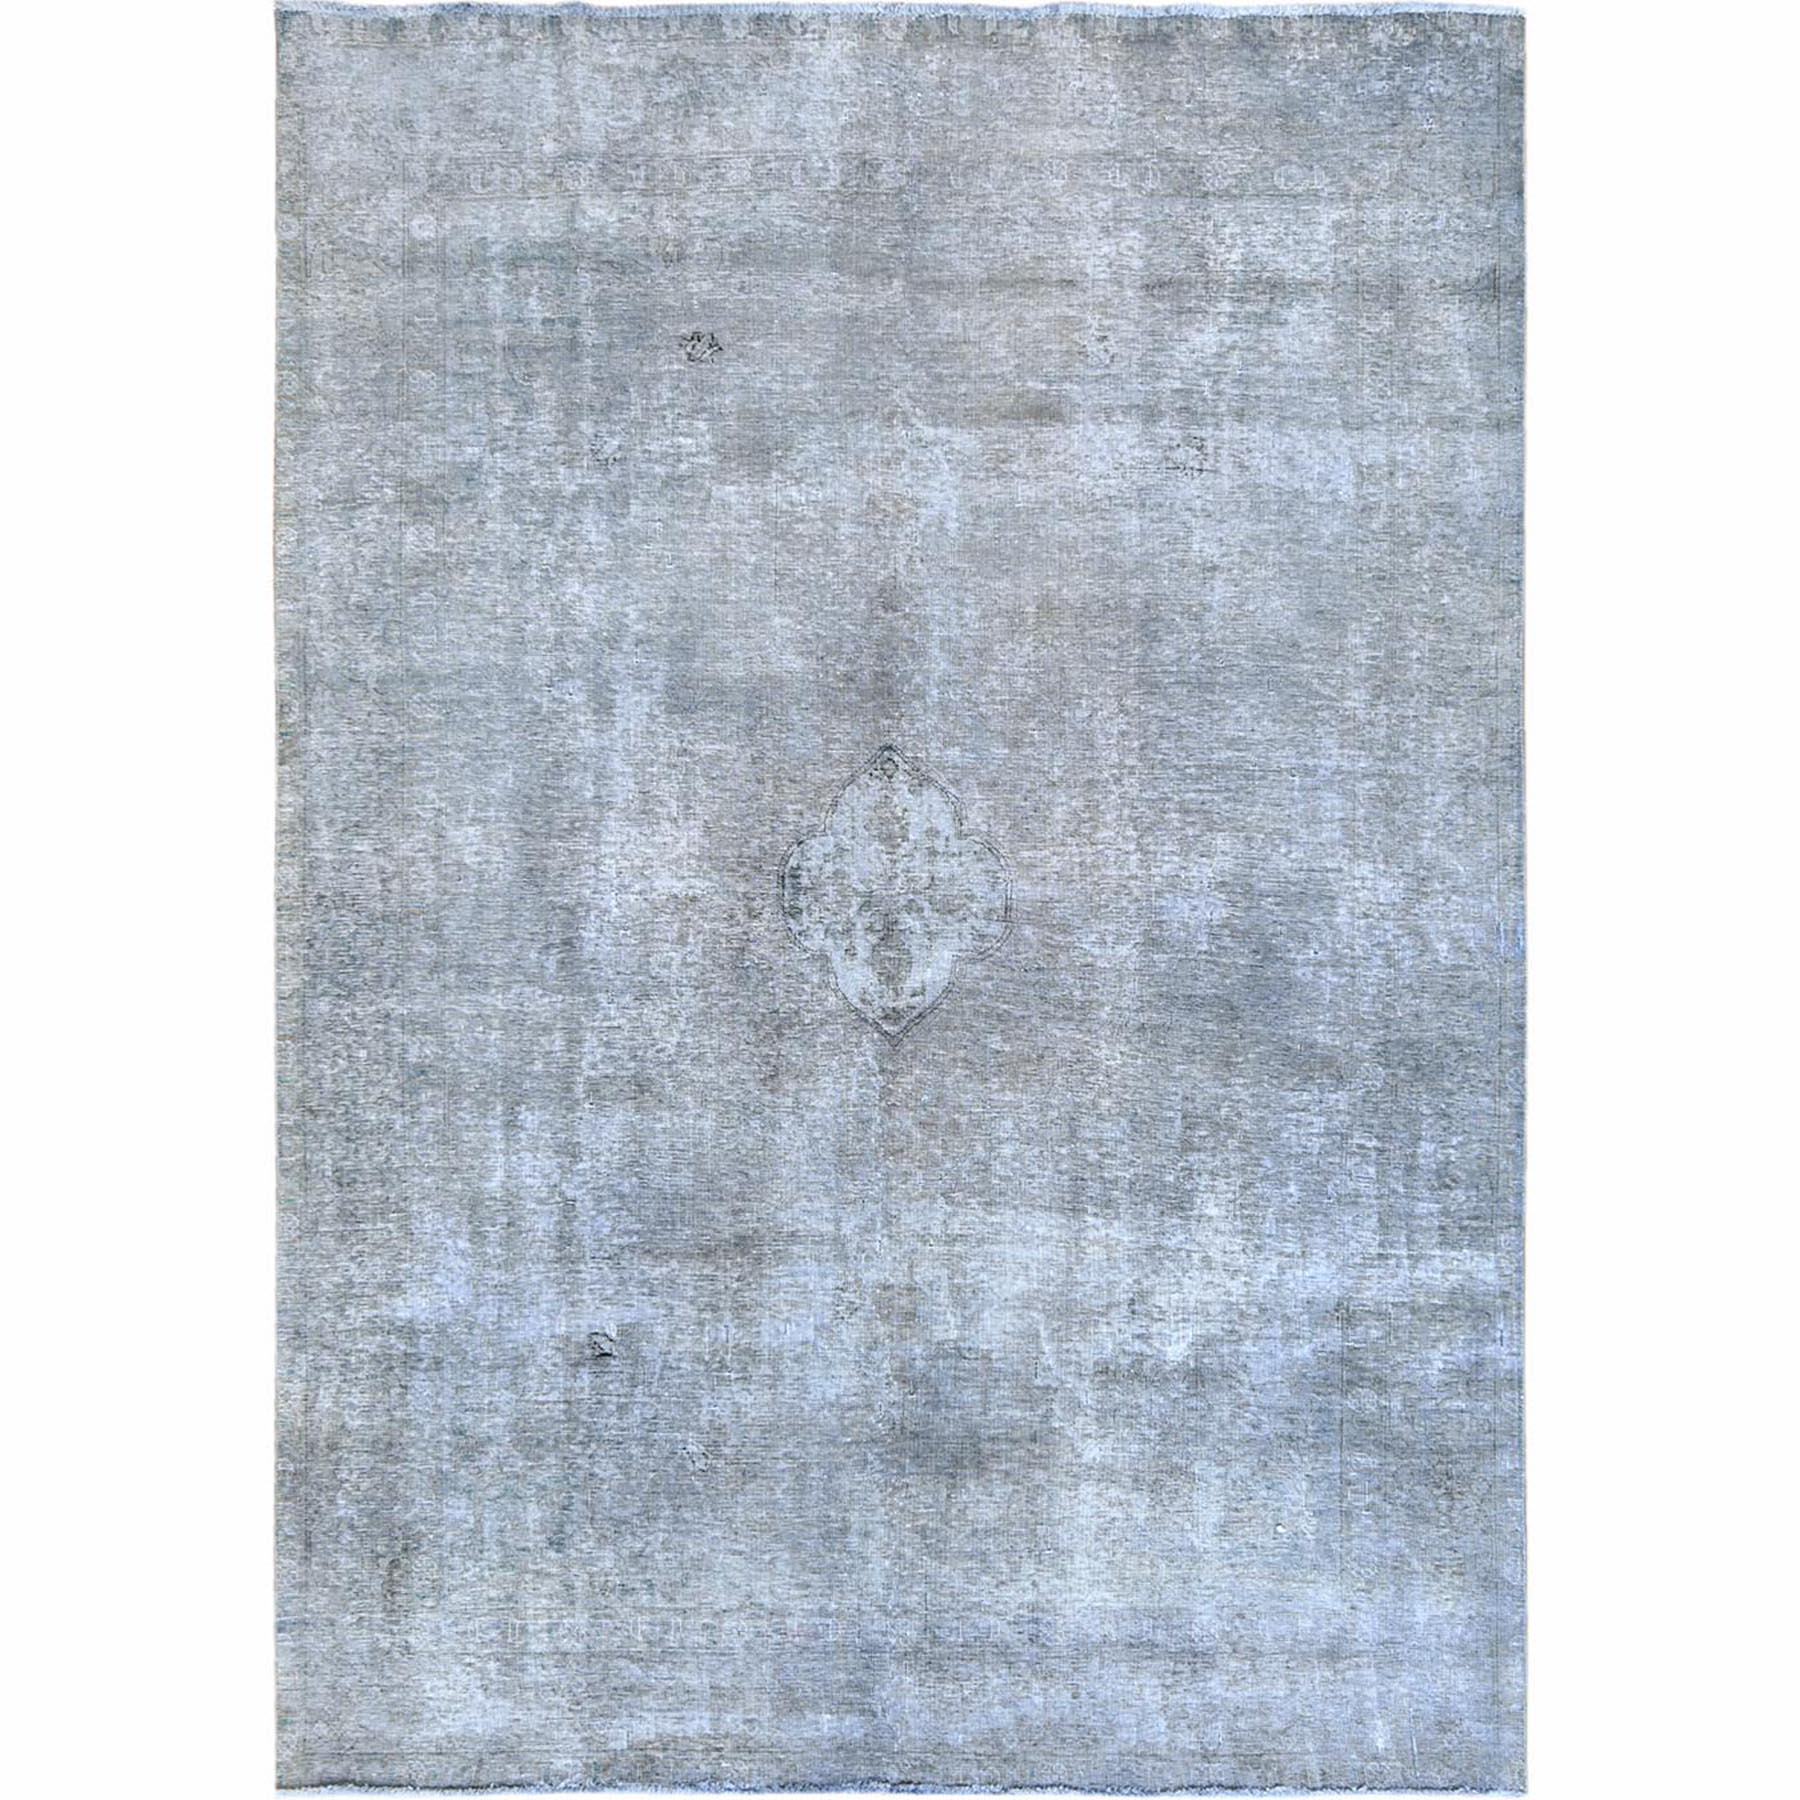 Fetneh Collection And Vintage Overdyed Collection Hand Knotted Grey Rug No: 1122406